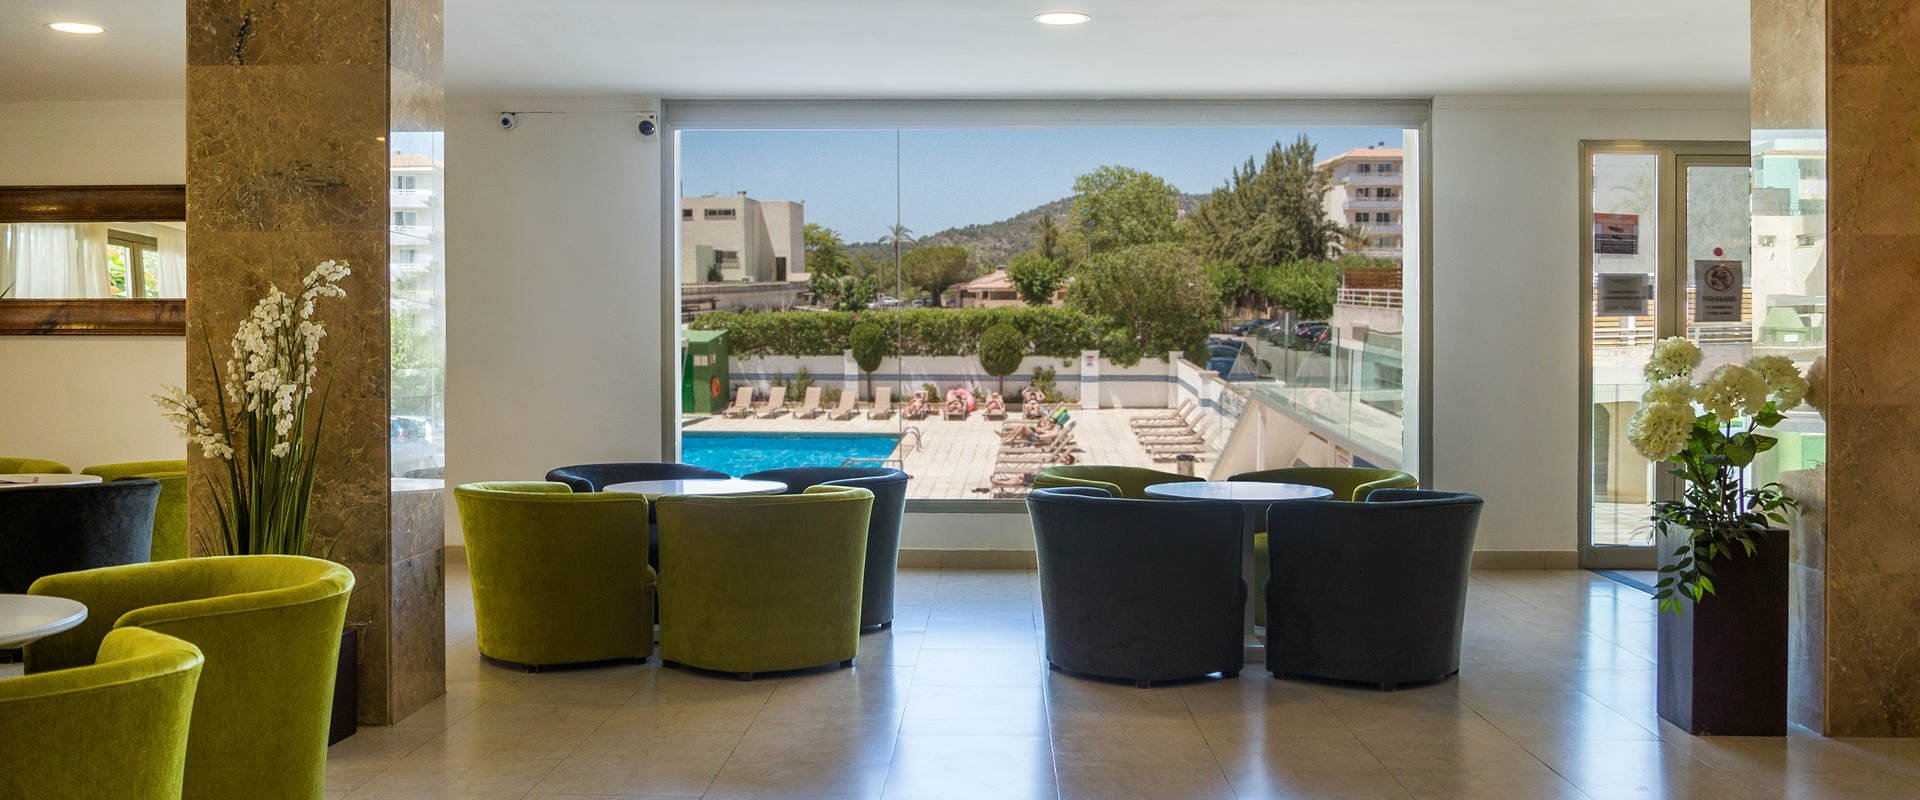 Prices 2019! Anticipate and book now Sol y Vera Apartments Magaluf, Majorca